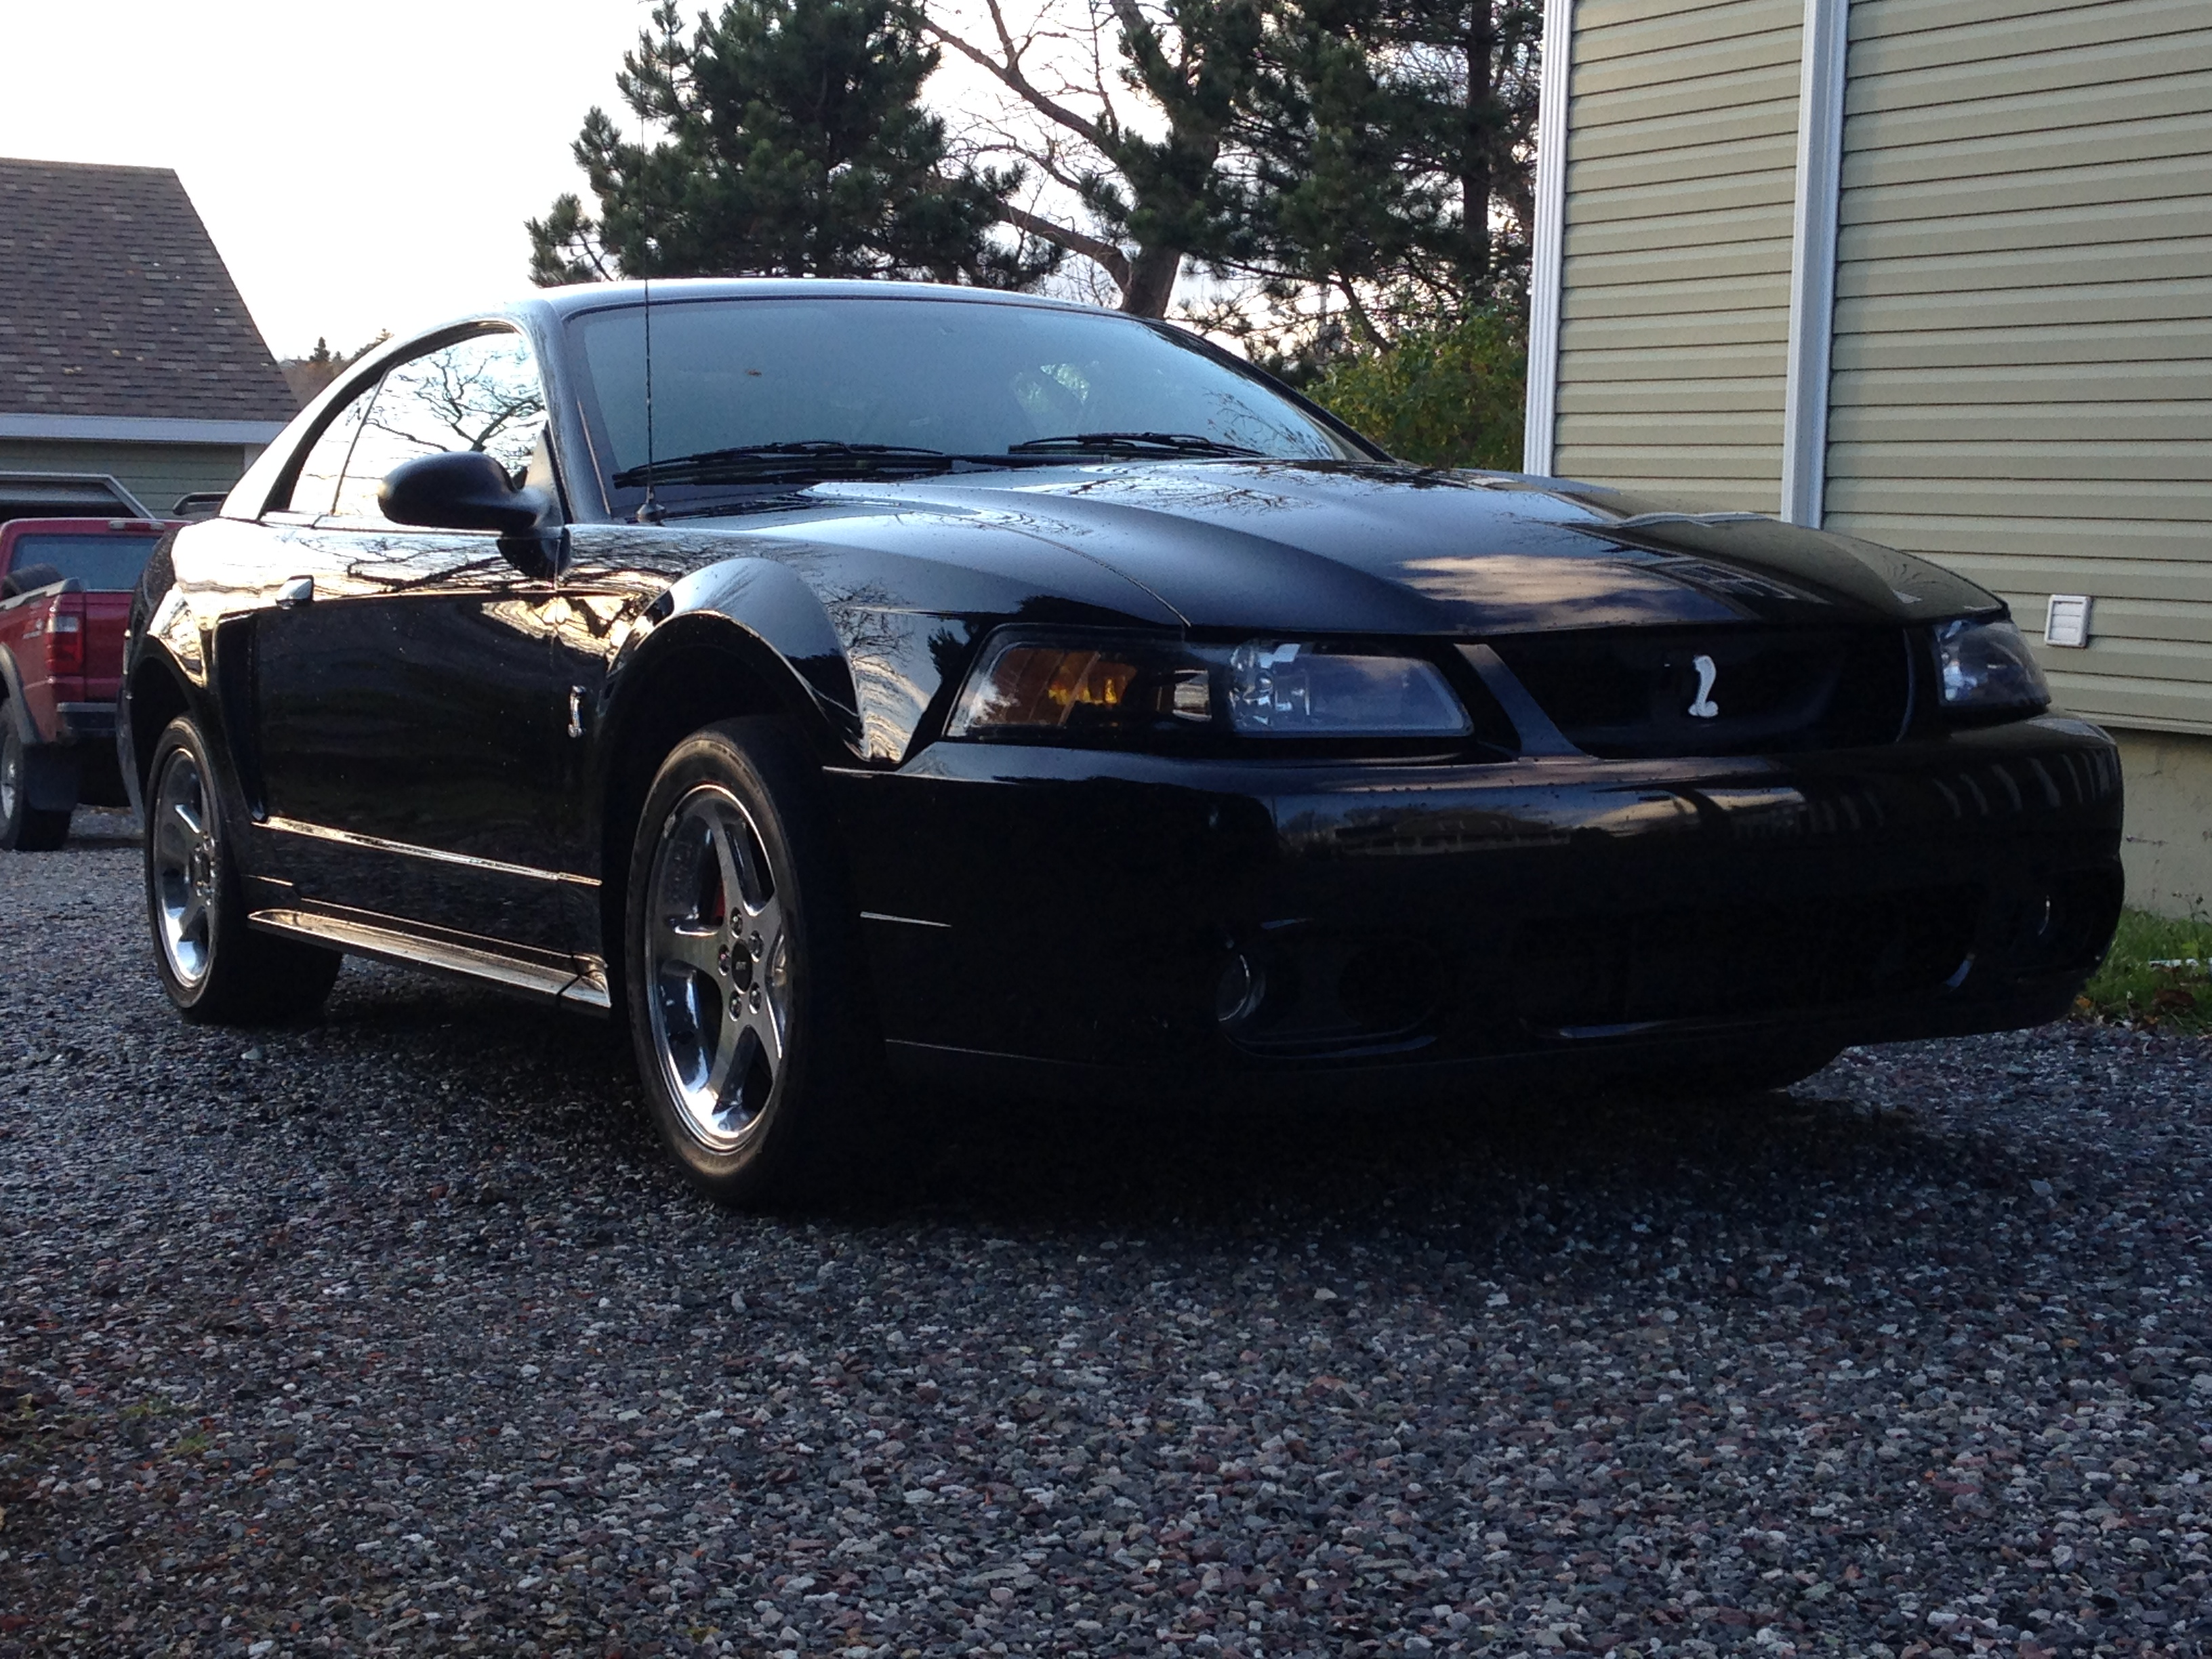 96_probe 2001 Ford Mustang